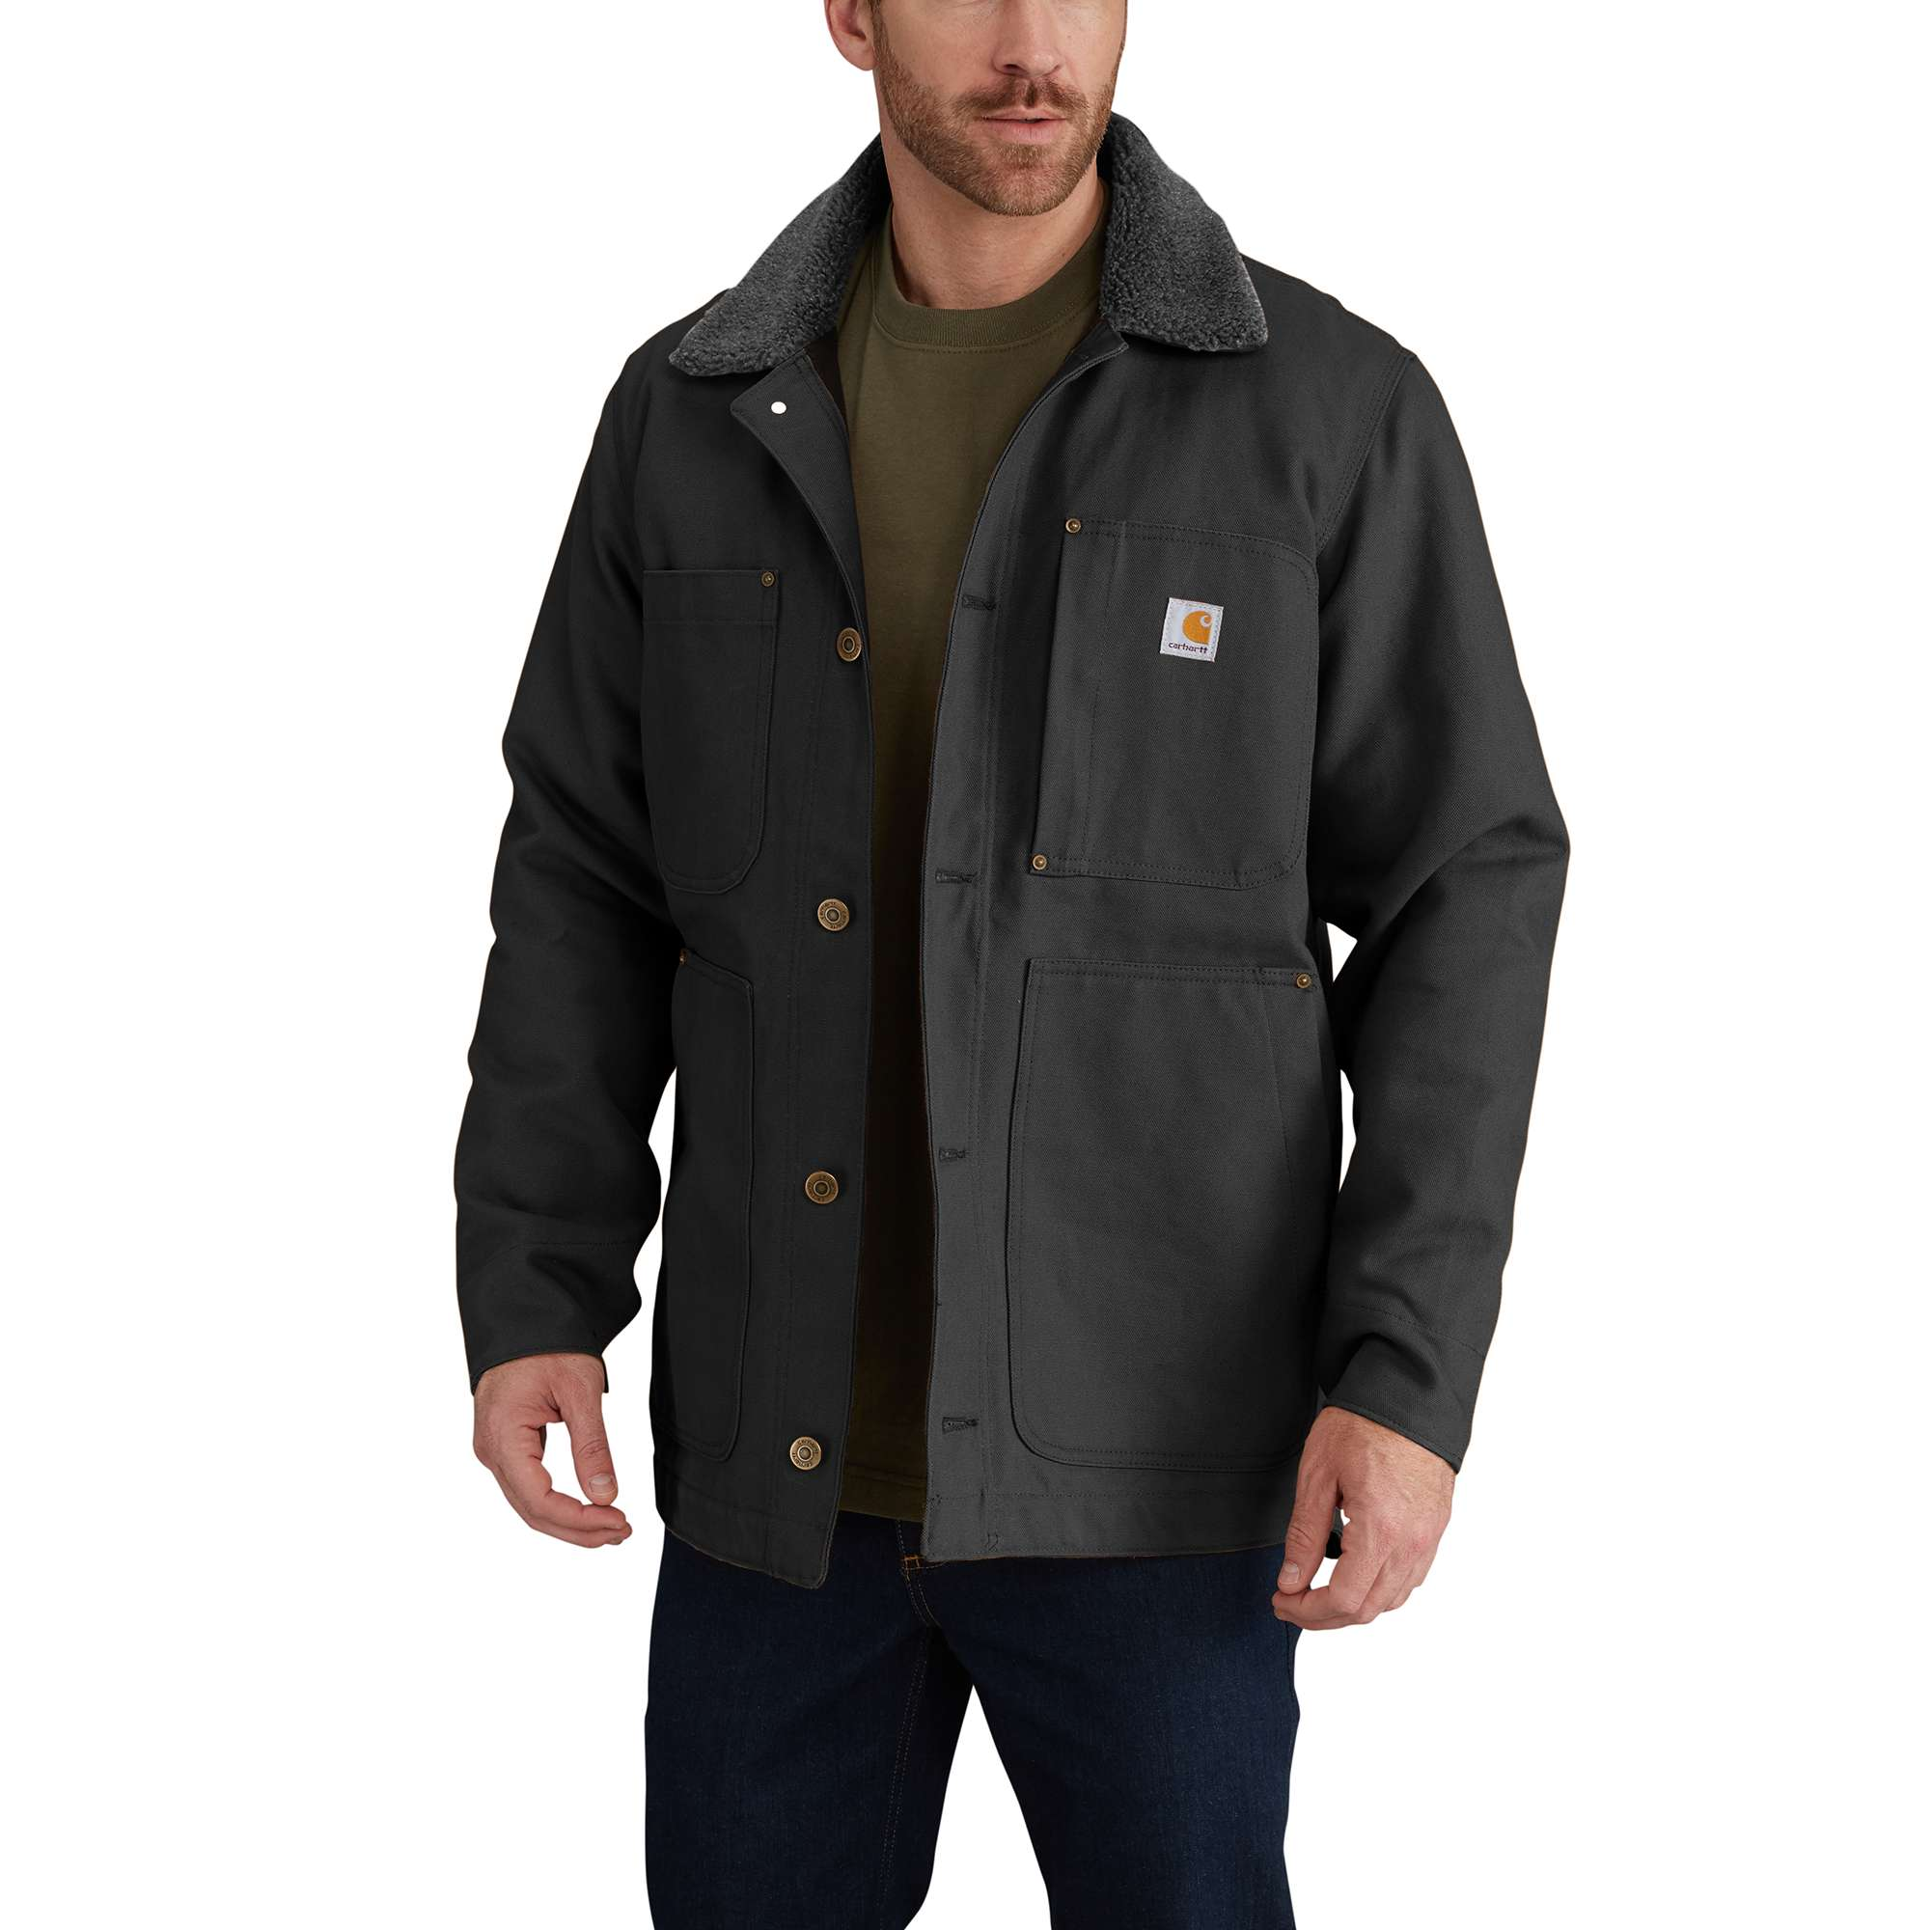 Carhartt Full Swing Chore Coat